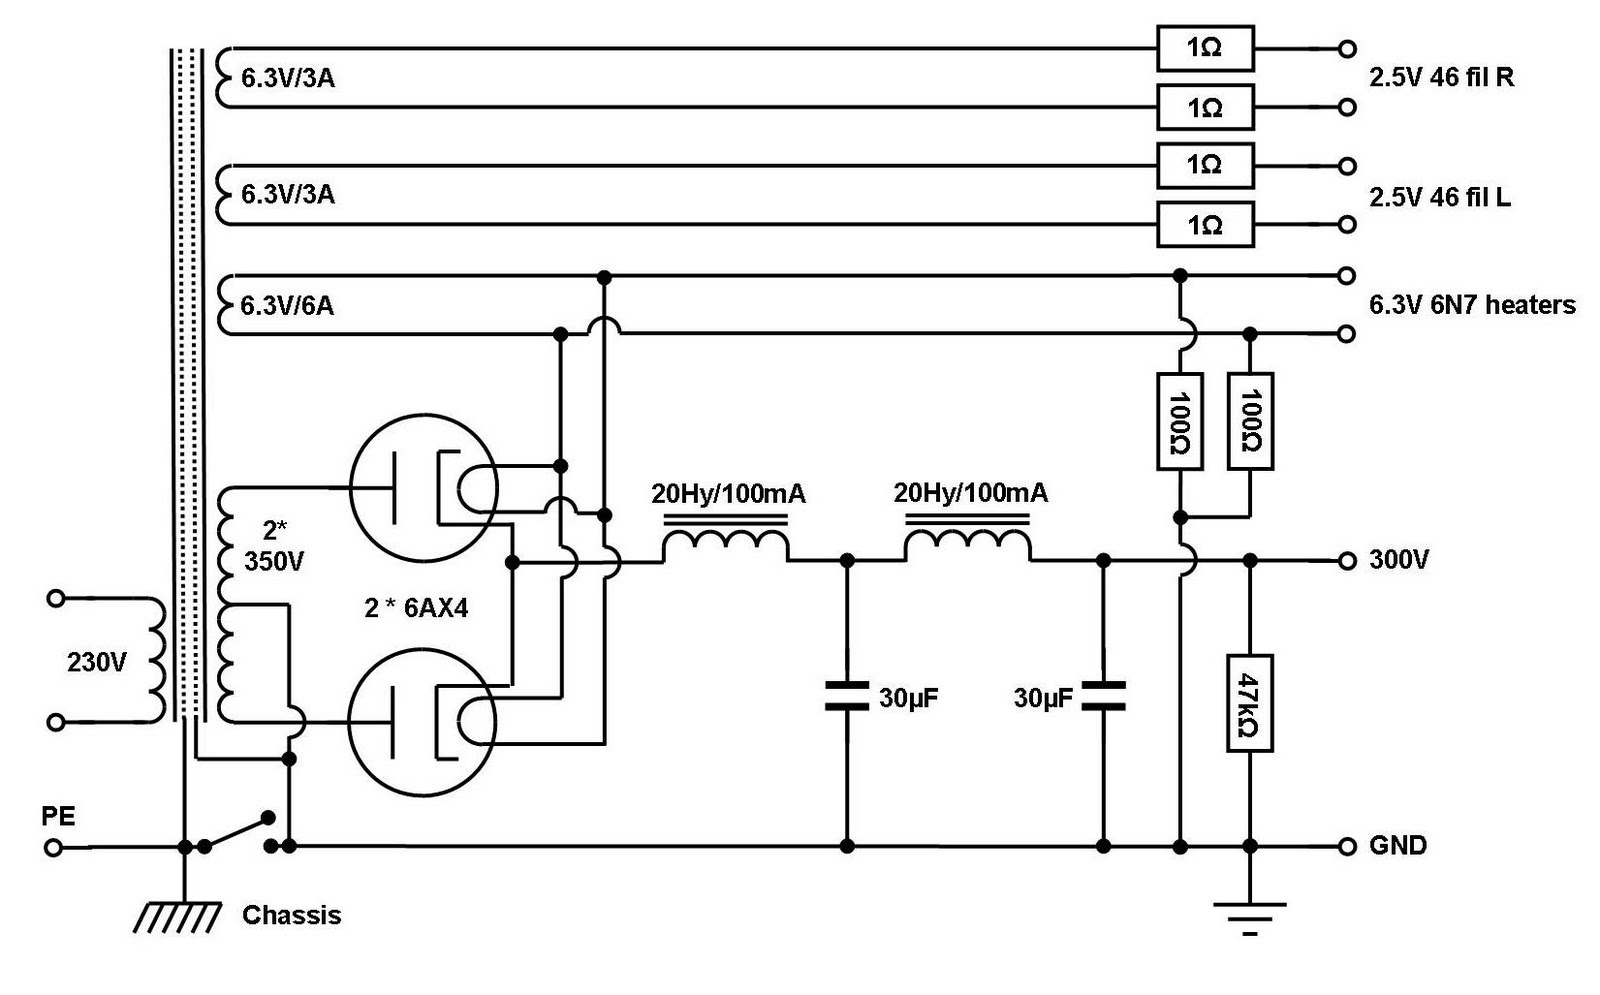 807 Tube Transmitter Schematic as well 1957 besides 813 Tube  lifier Schematic besides 46 Tube  lifier Schematic further Nmw2IDgwNyB0cmFuc21pdHRlcg. on arrl 807 tube transmitter schematic